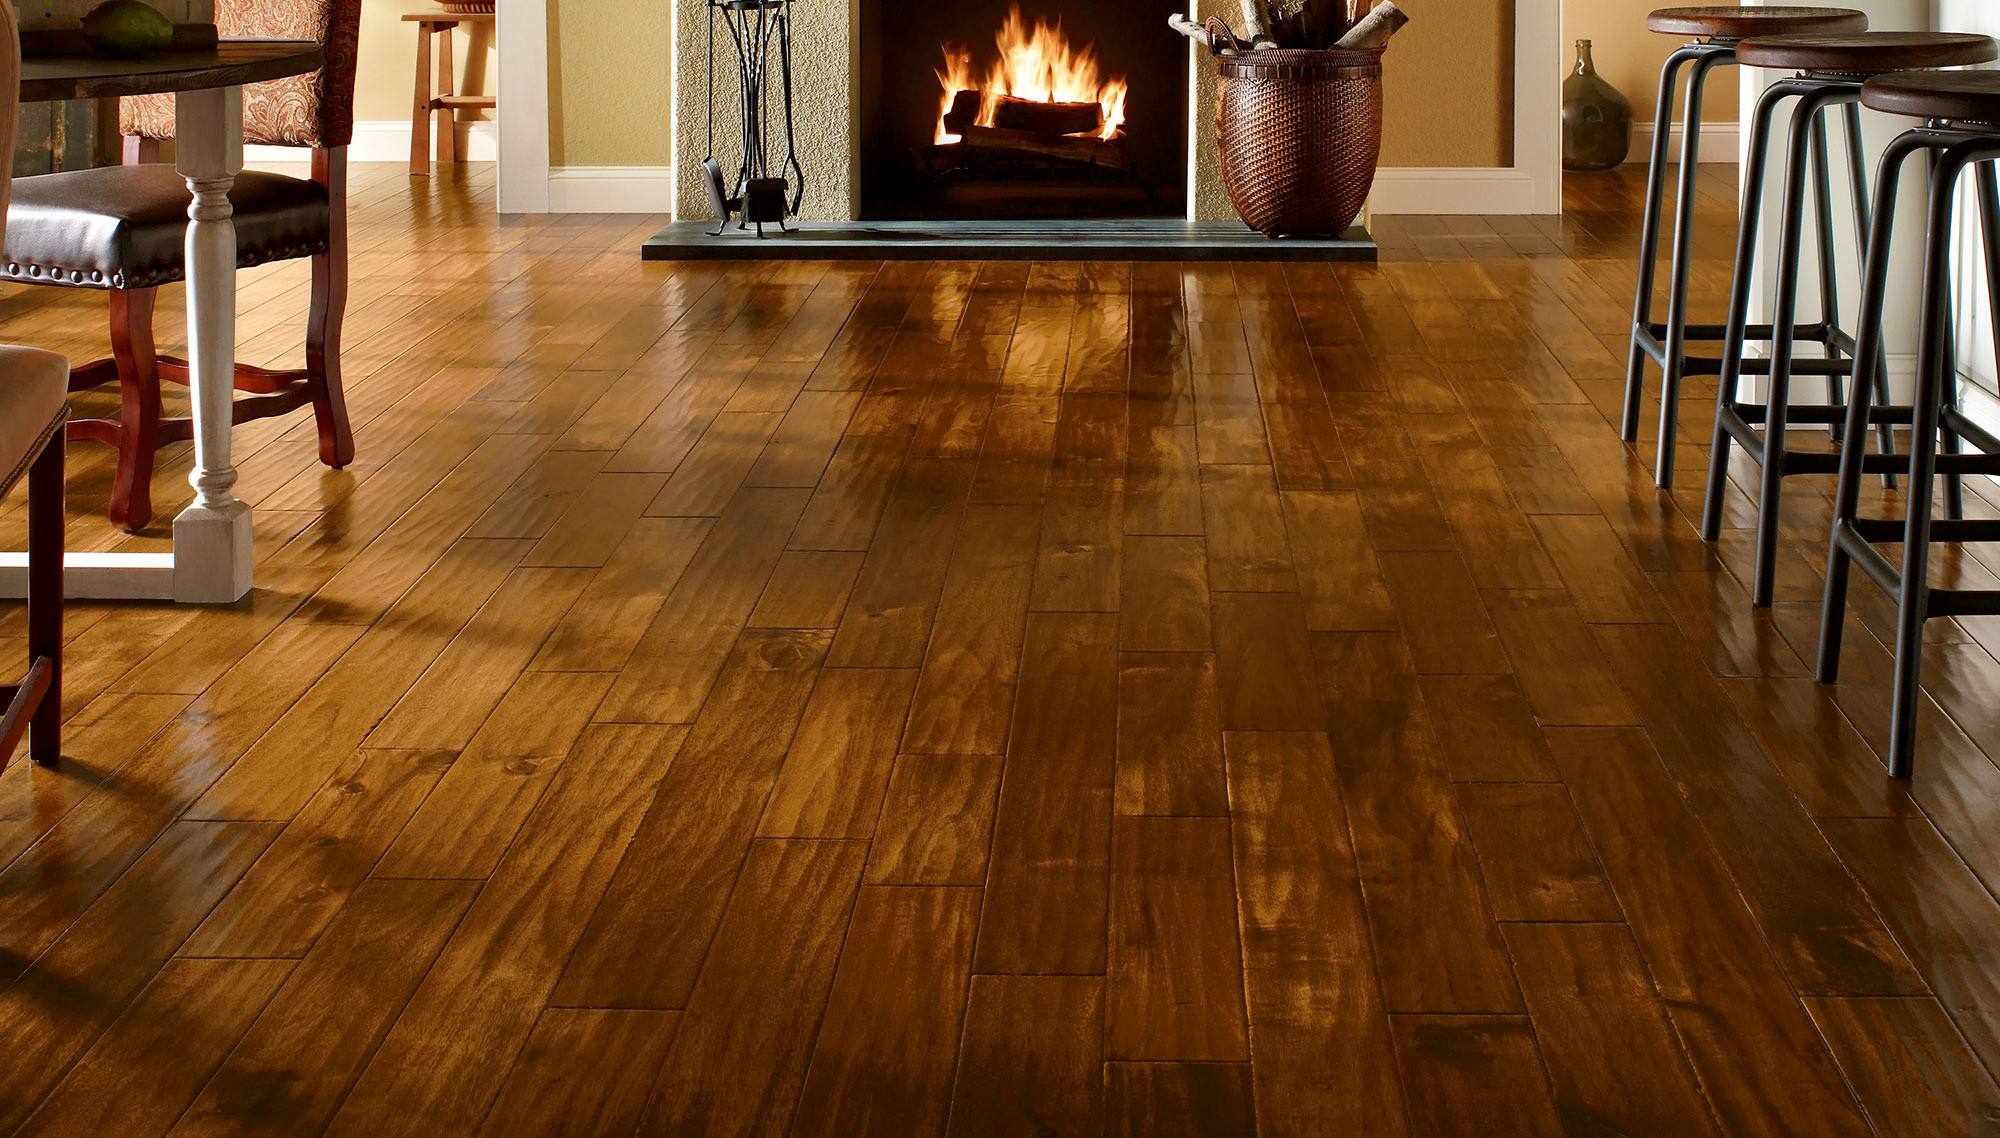 discount hardwood flooring canada of hardwood floor installation archives wlcu regarding hardwood floor designs best of appealing discount hardwood flooring 1 big kitchen floor hardwood floor